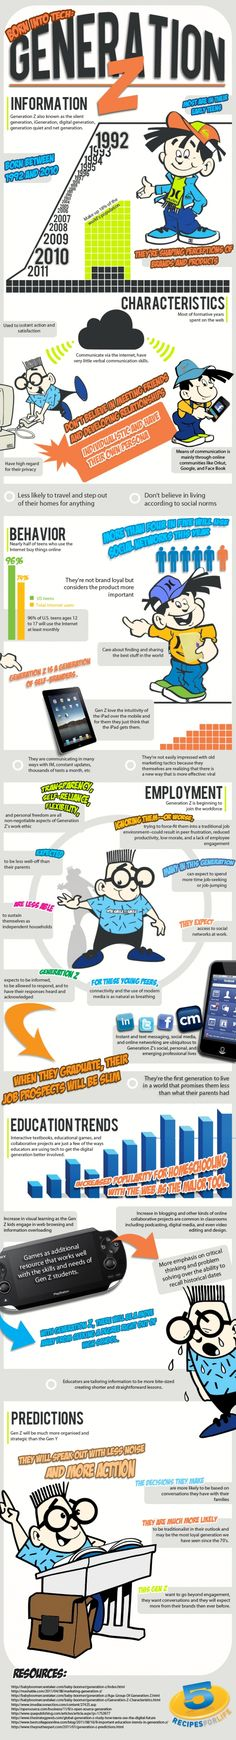 Generation Z   source: http://infographiclist.com/2012/02/28/born-into-tech-generation-z-infographic/?utm_medium=twitter&utm_source=twitterfeed/    #infographic